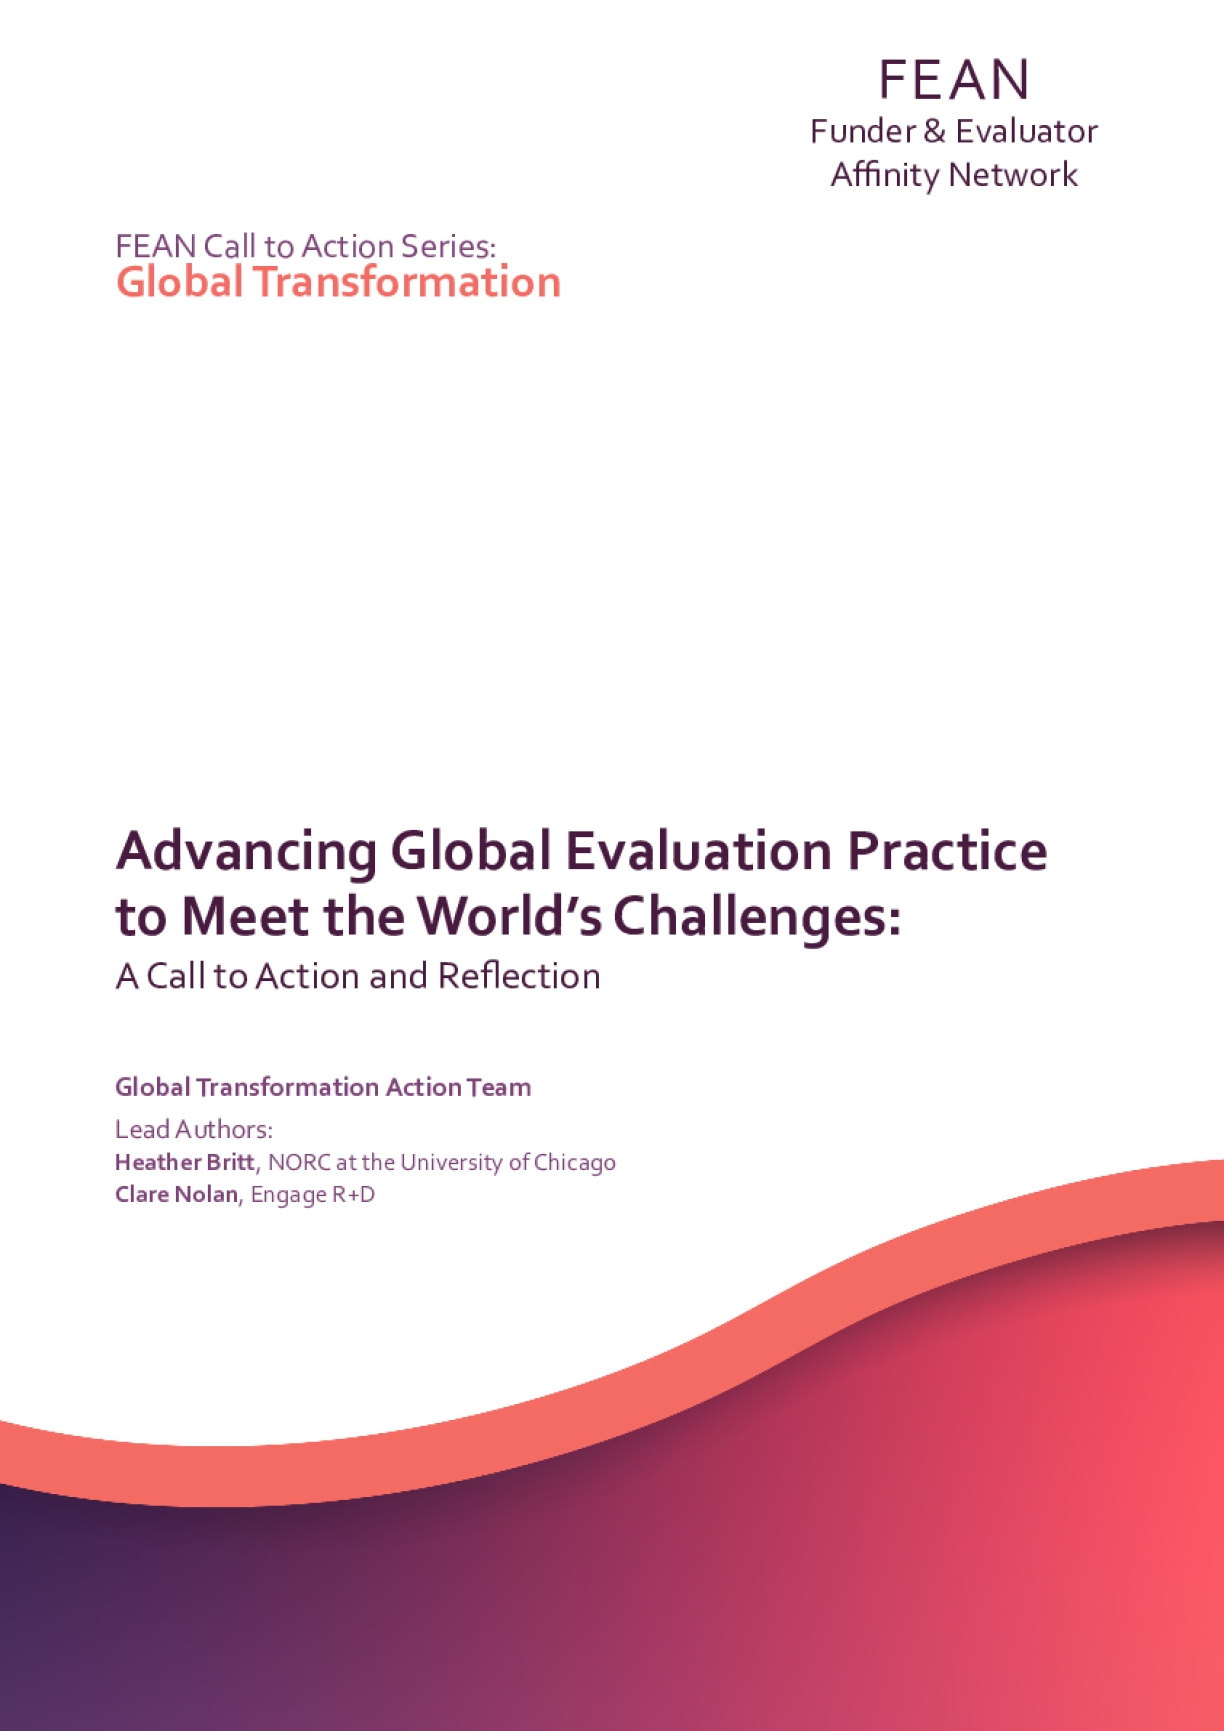 Advancing Evaluation Practice to Meet Global Challenges: A call to action and reflection